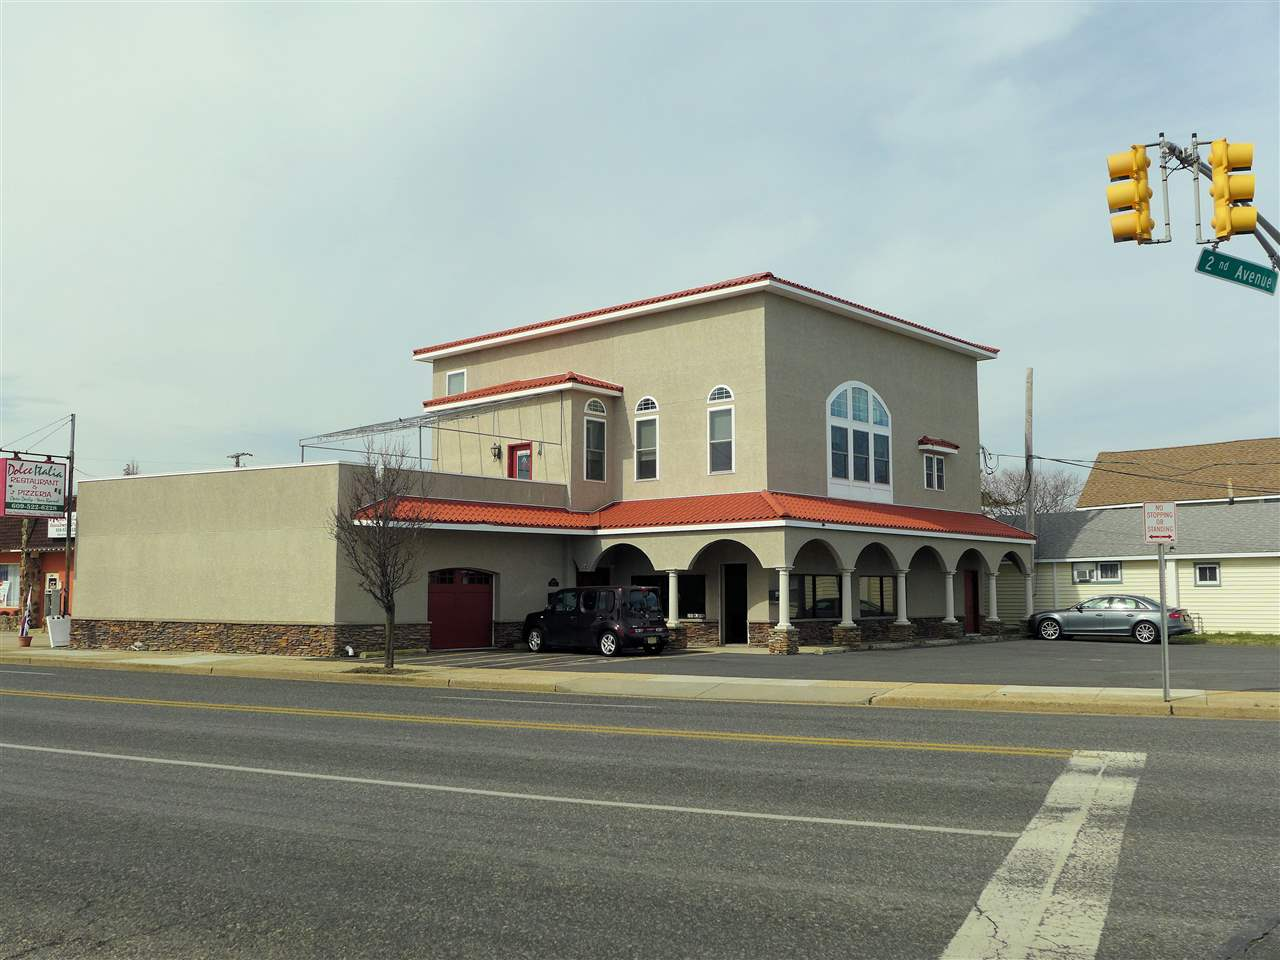 Commercial / Industrial for Sale at 200 New Jersey Avenue 200 New Jersey Avenue North Wildwood, New Jersey 08260 United States